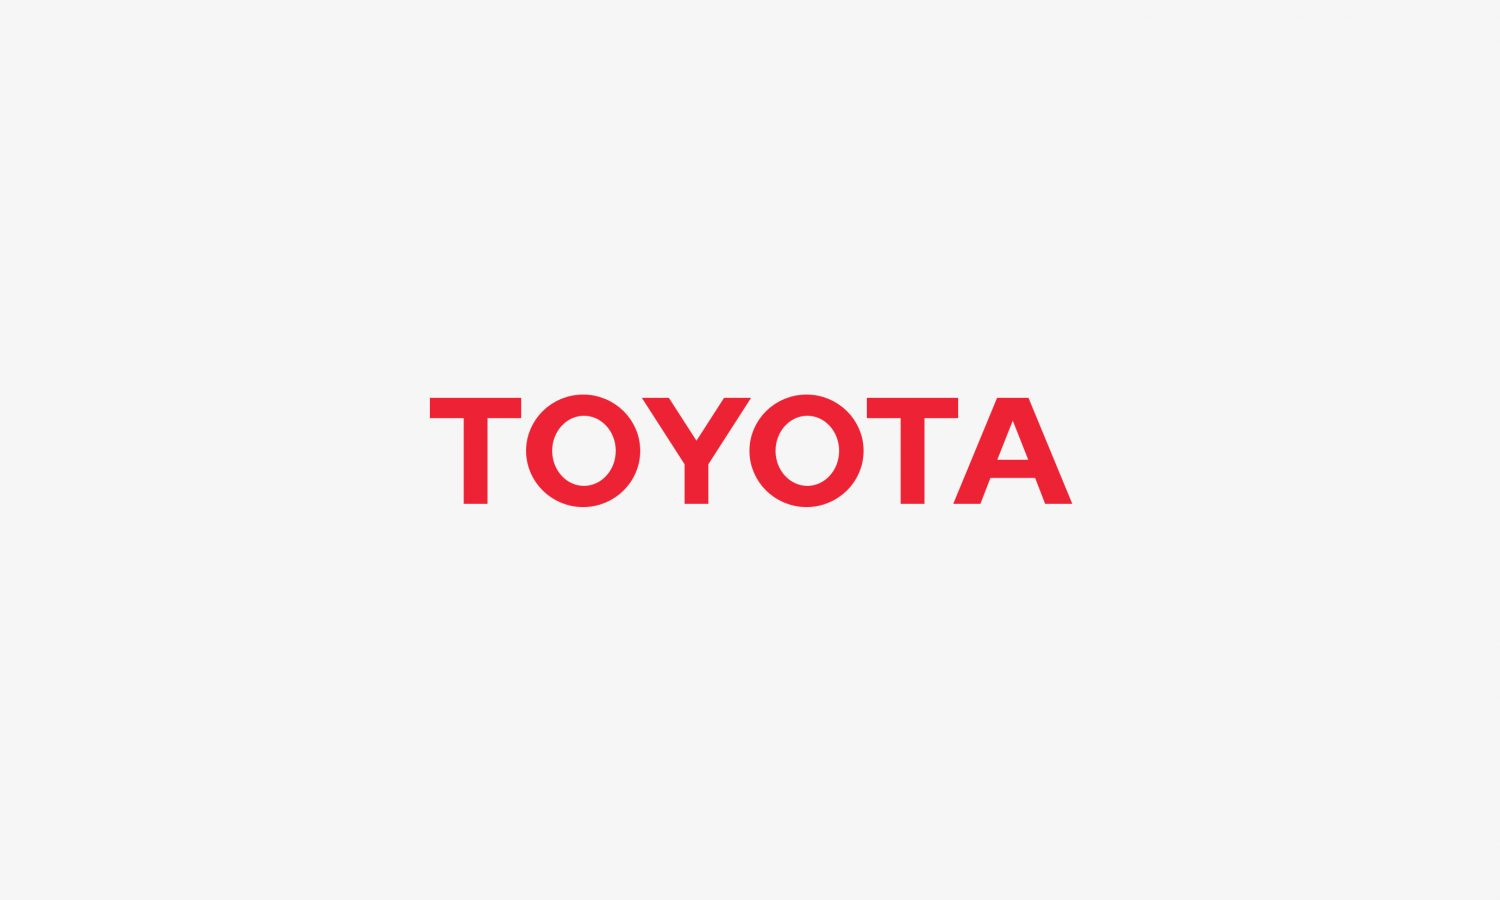 Toyota Connected Europe to bring advanced mobility services to the European market